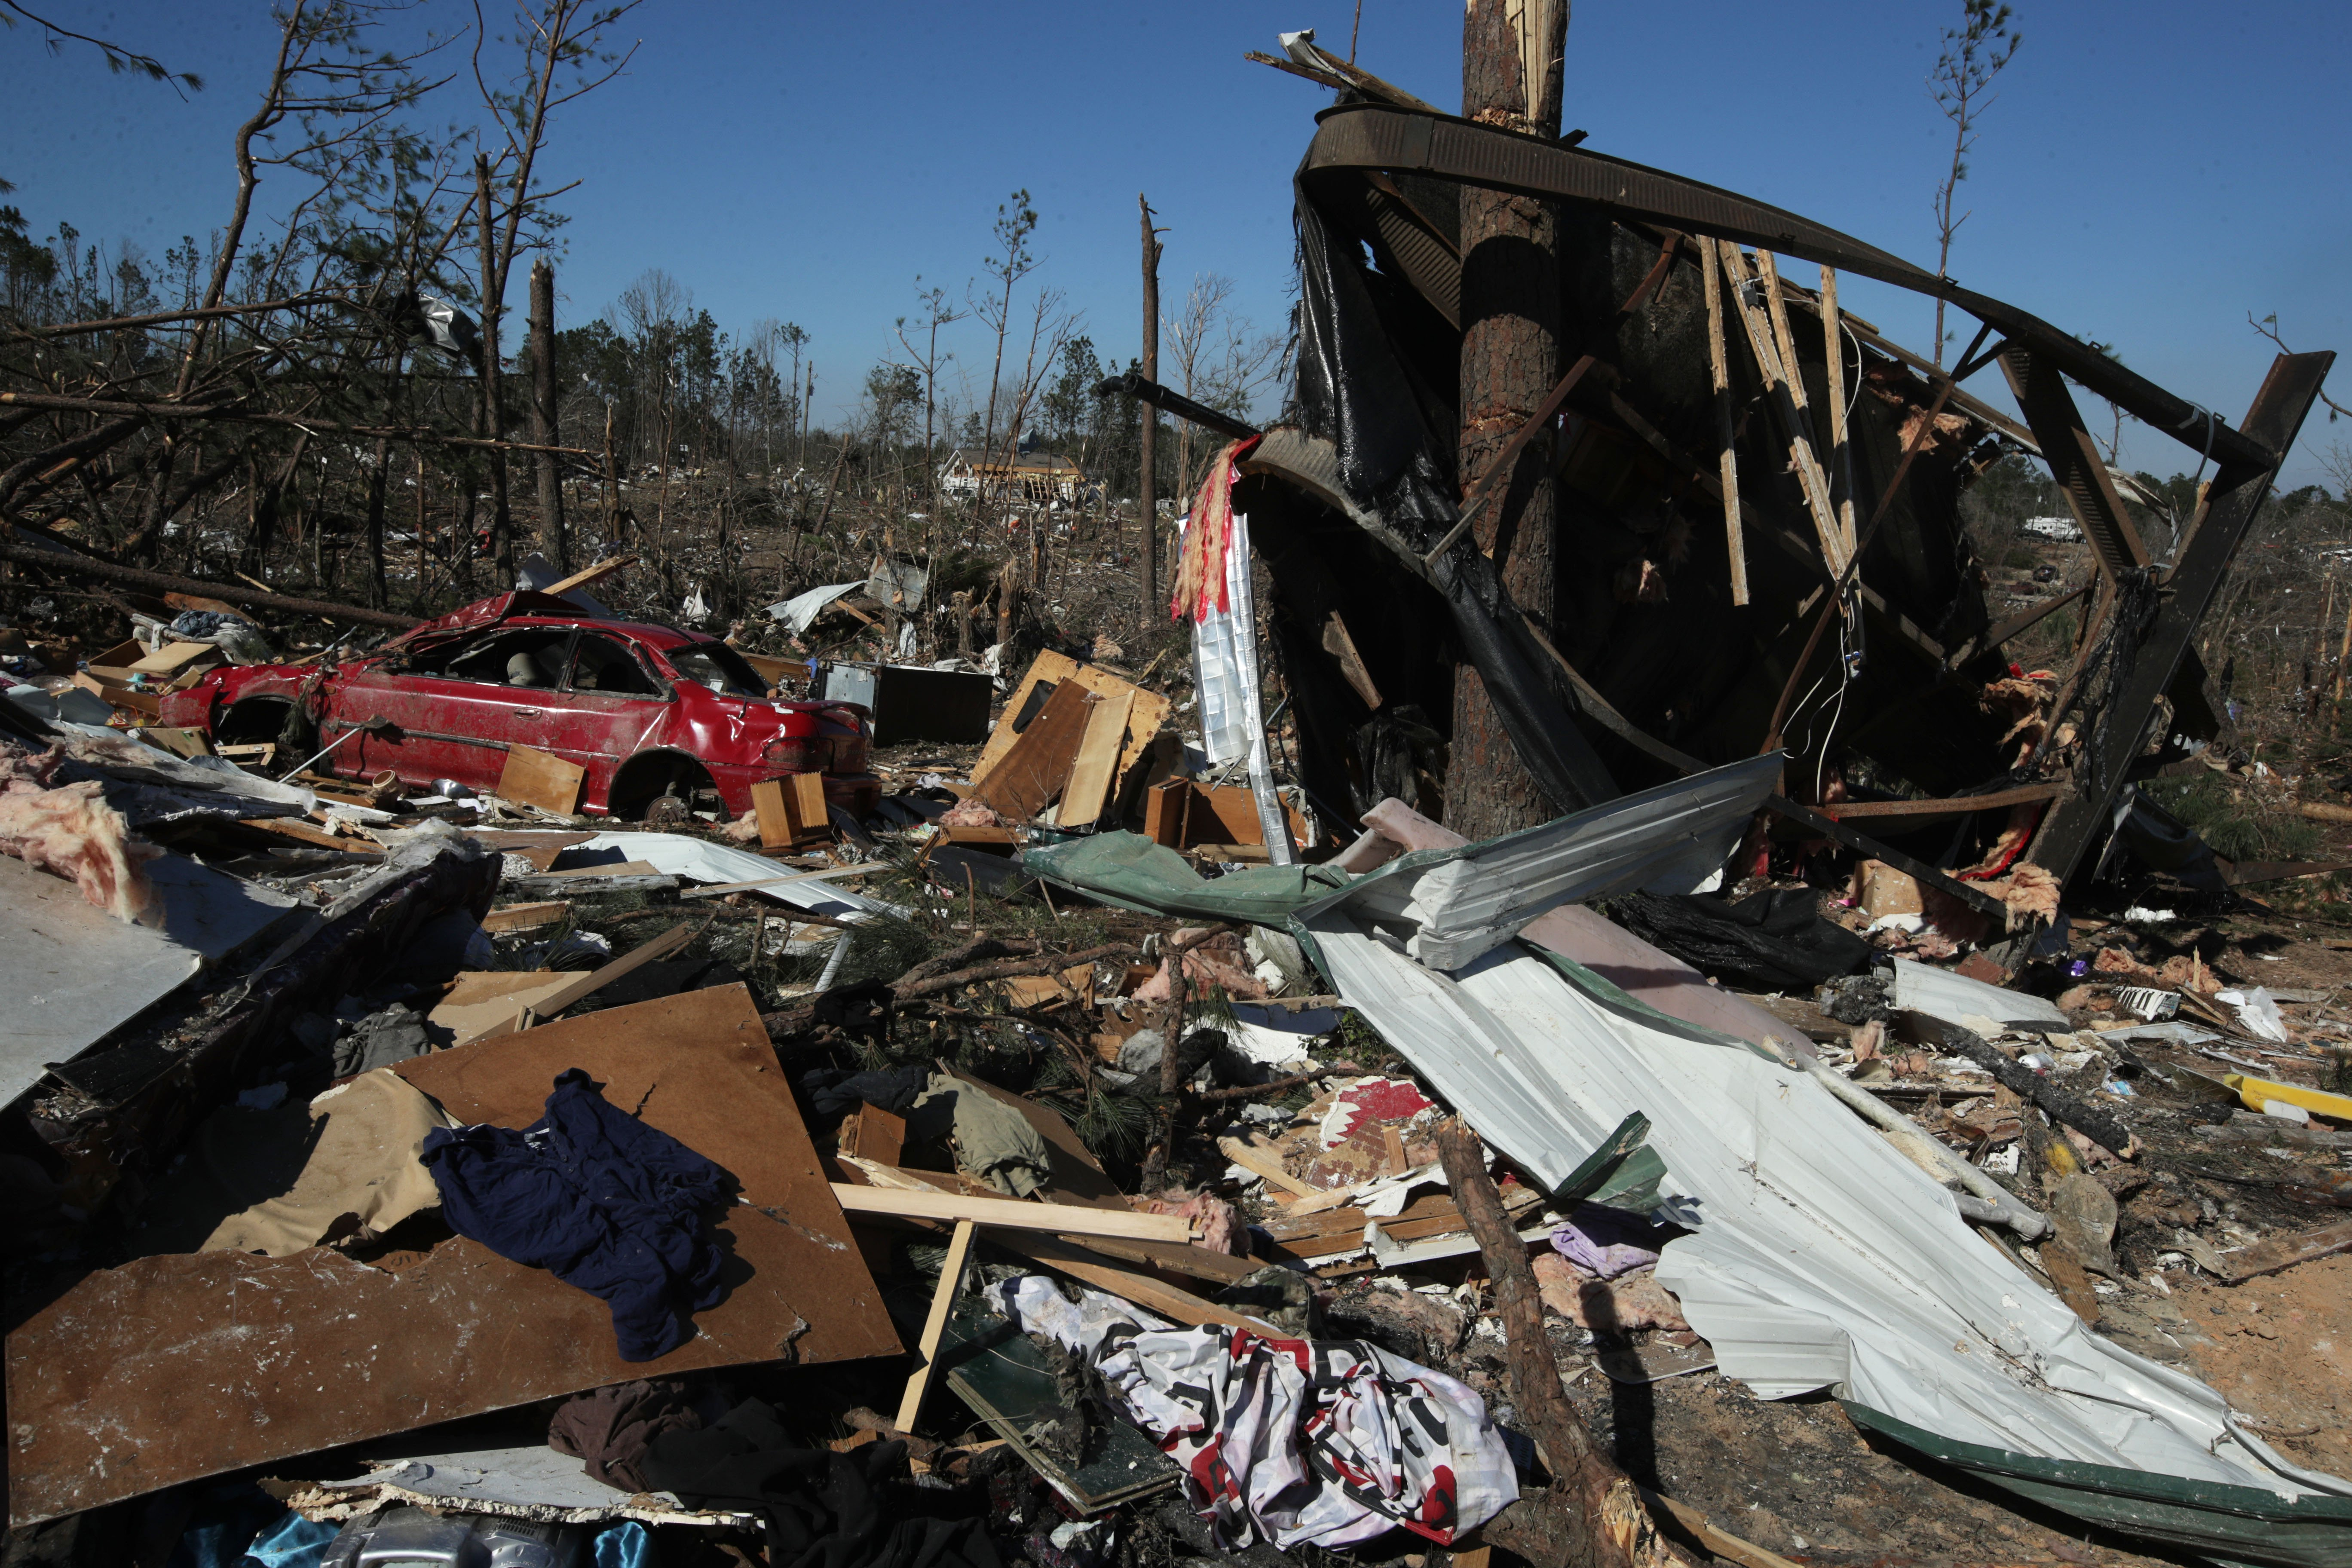 The devastation caused by the tornado in Beauregard, Alabama | Photo: Getty Images